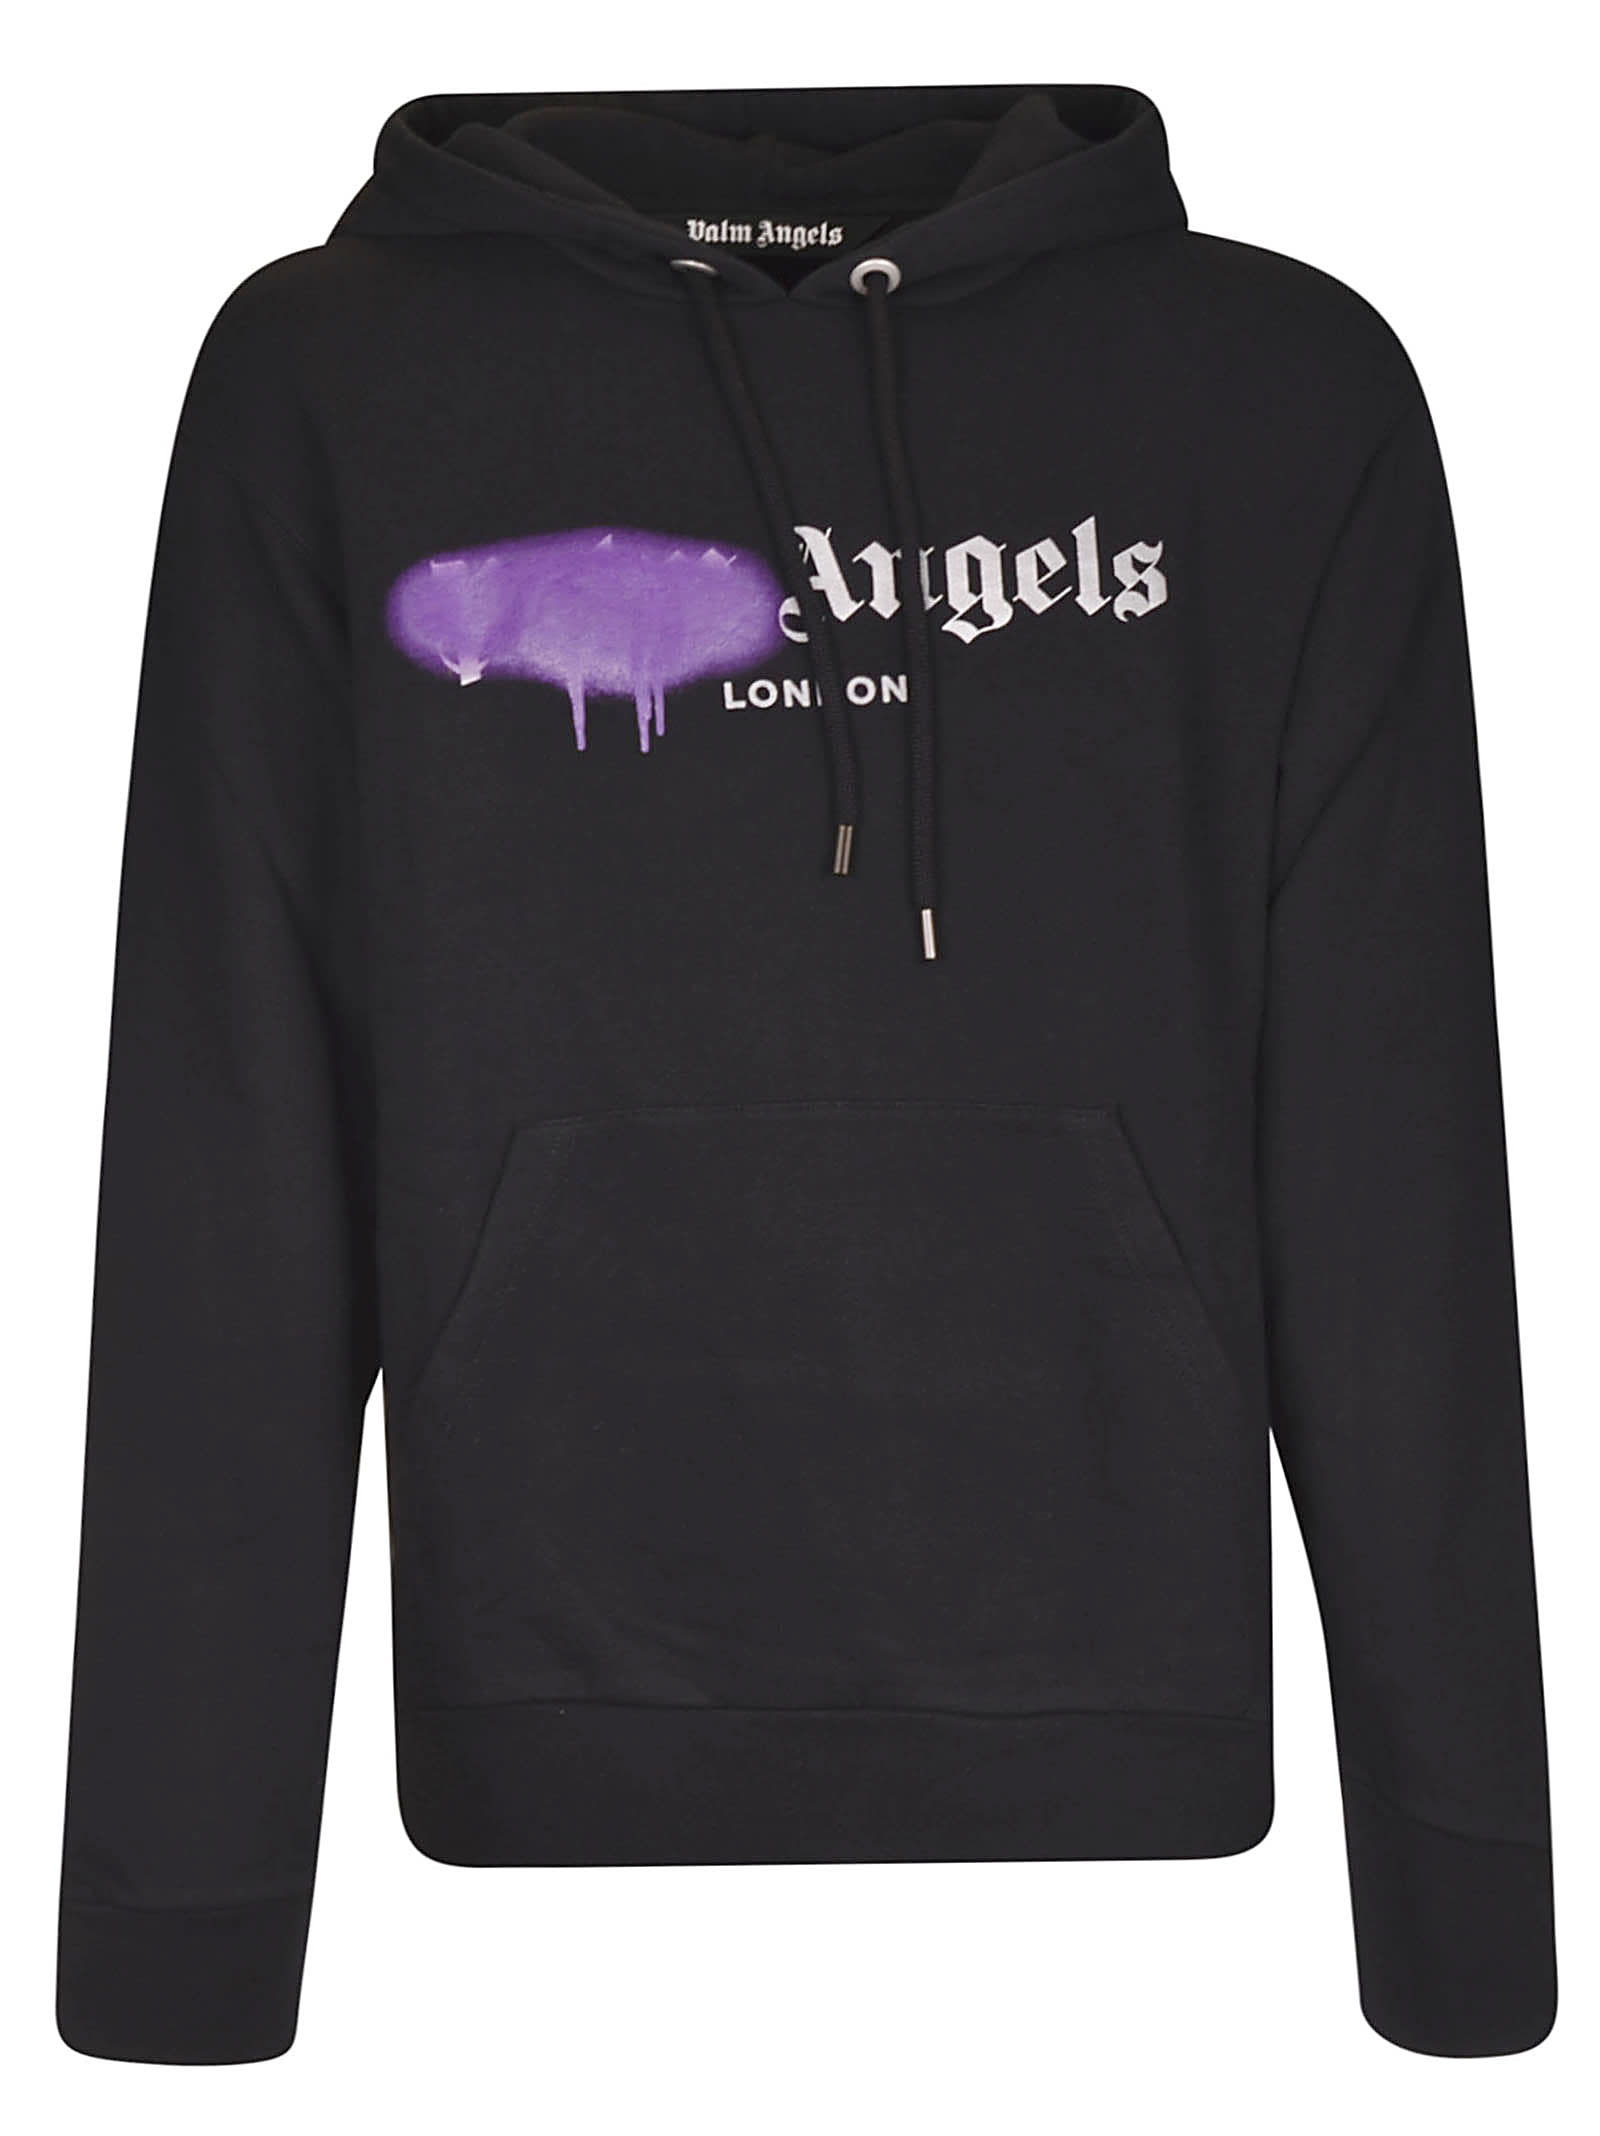 PALM ANGELS LONDON SPRAYED LOGO HOODIE